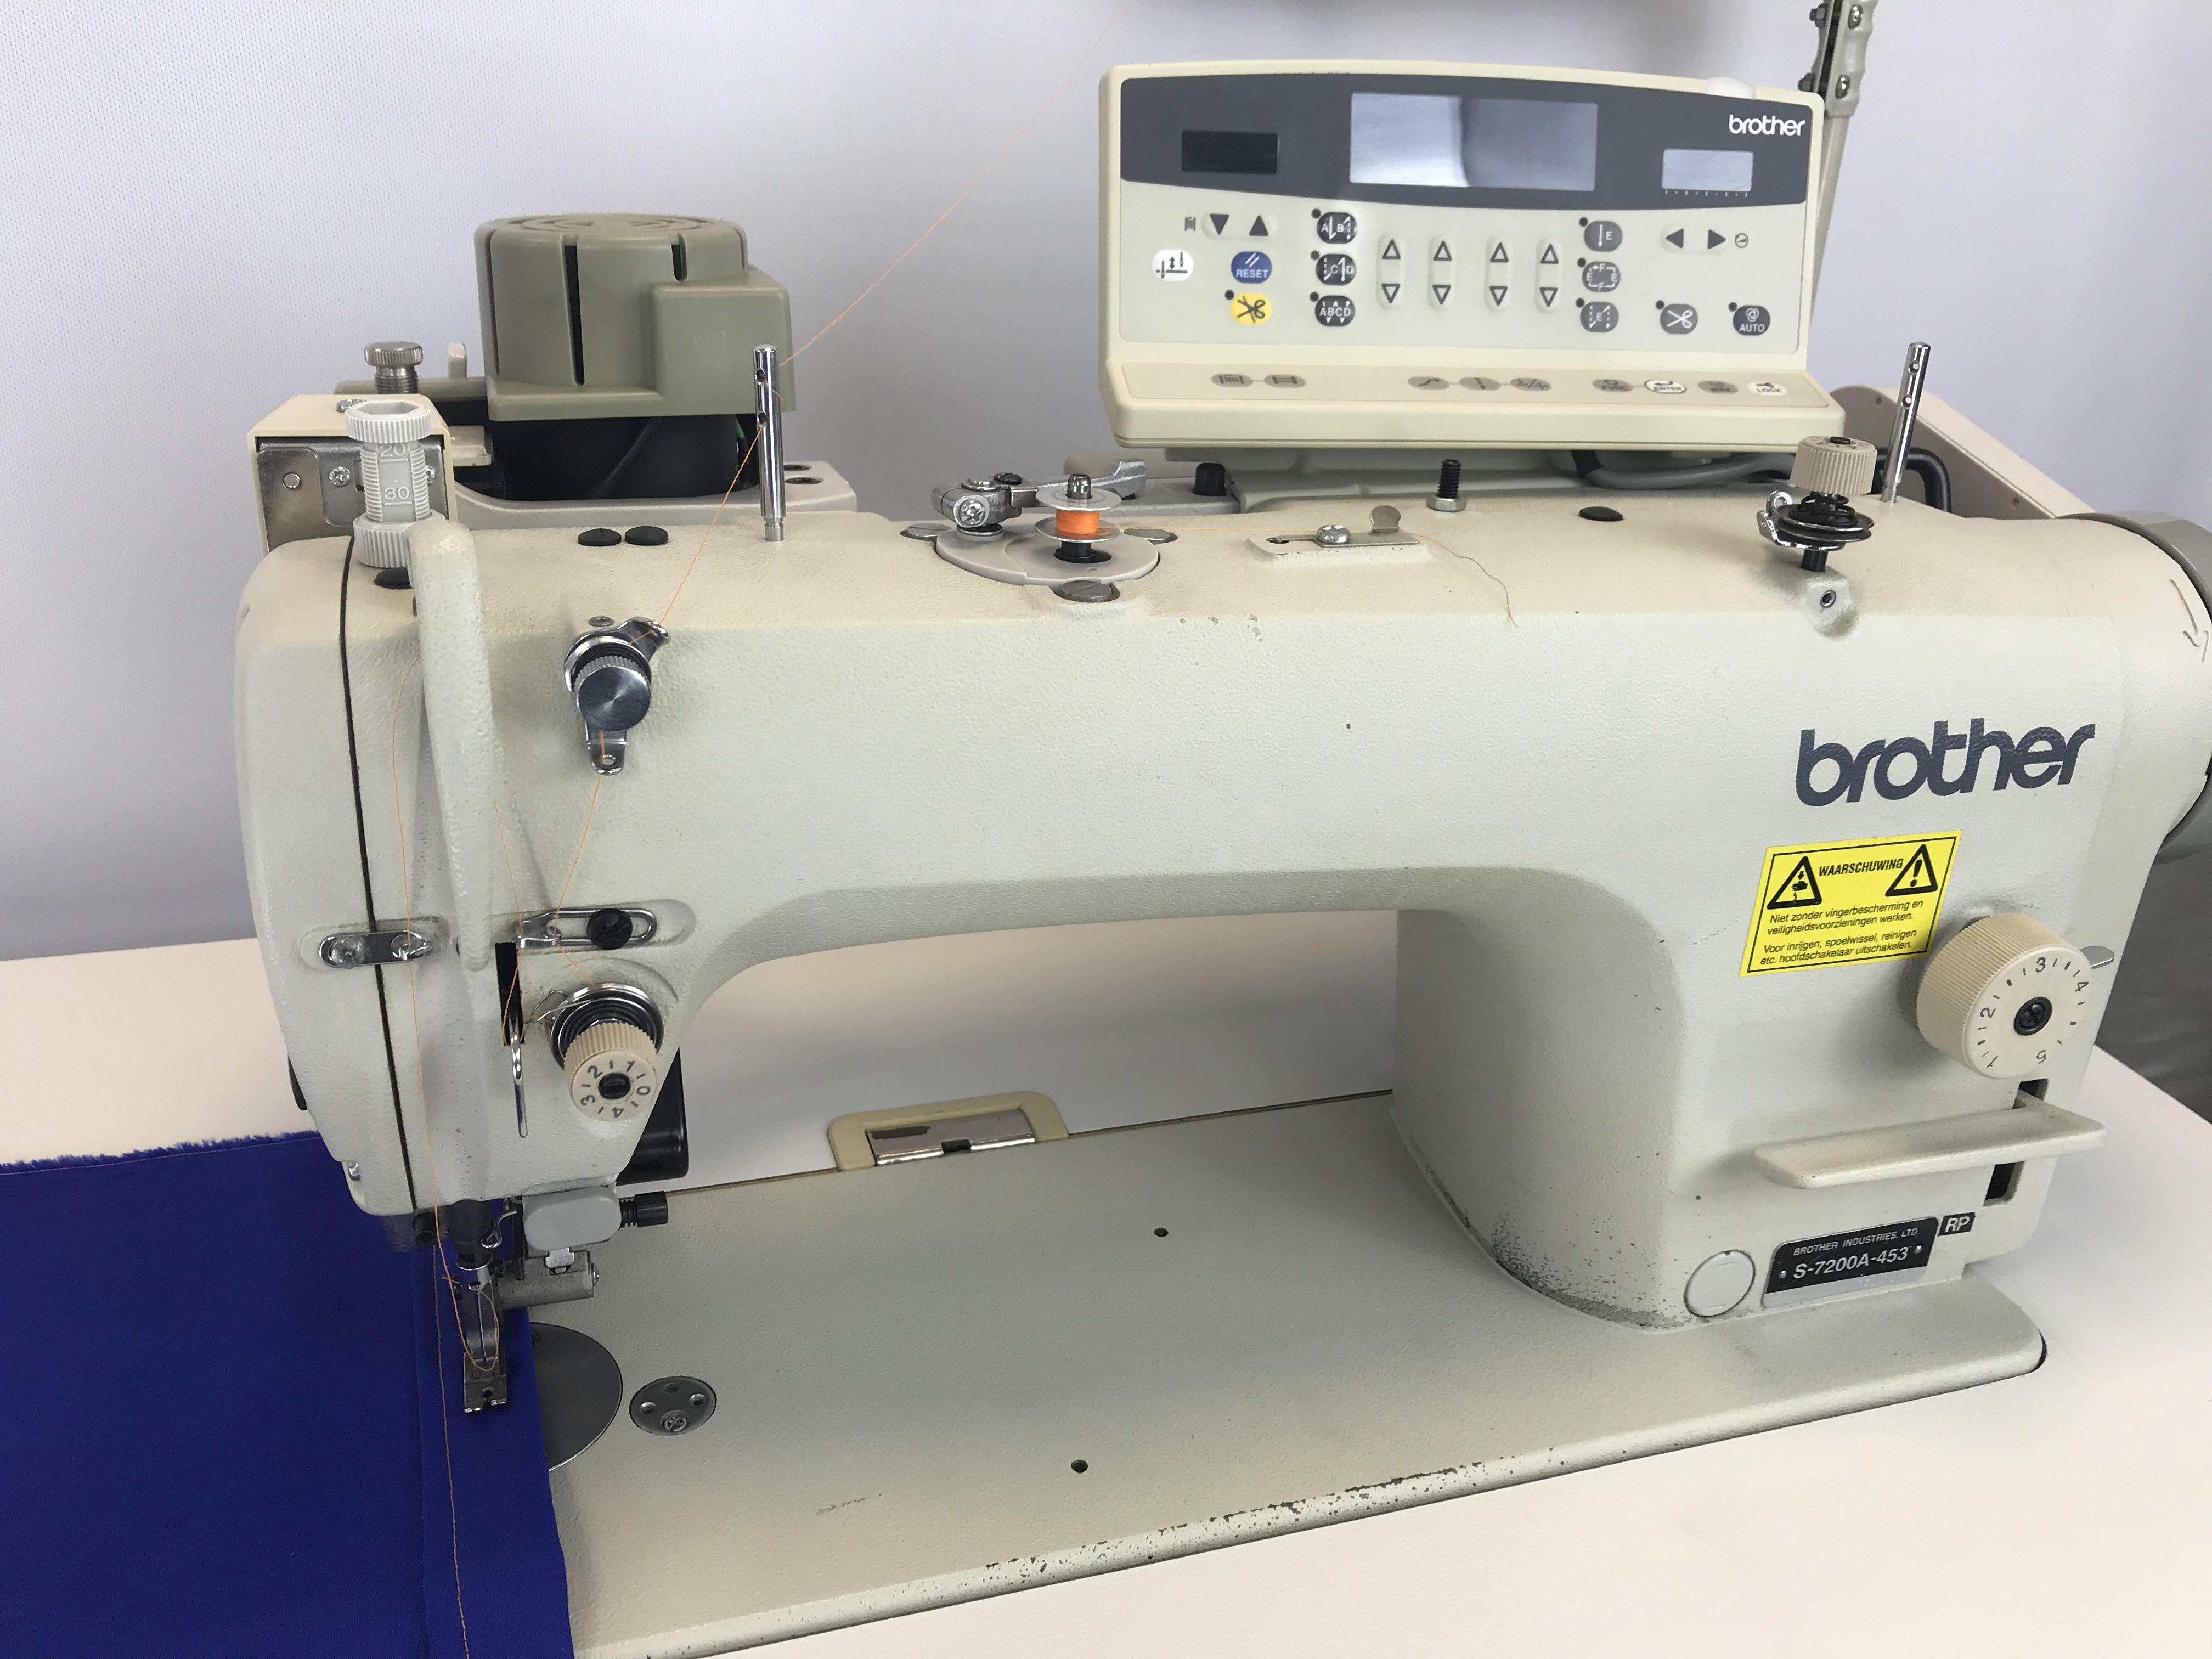 Brother S 7200A-453 small